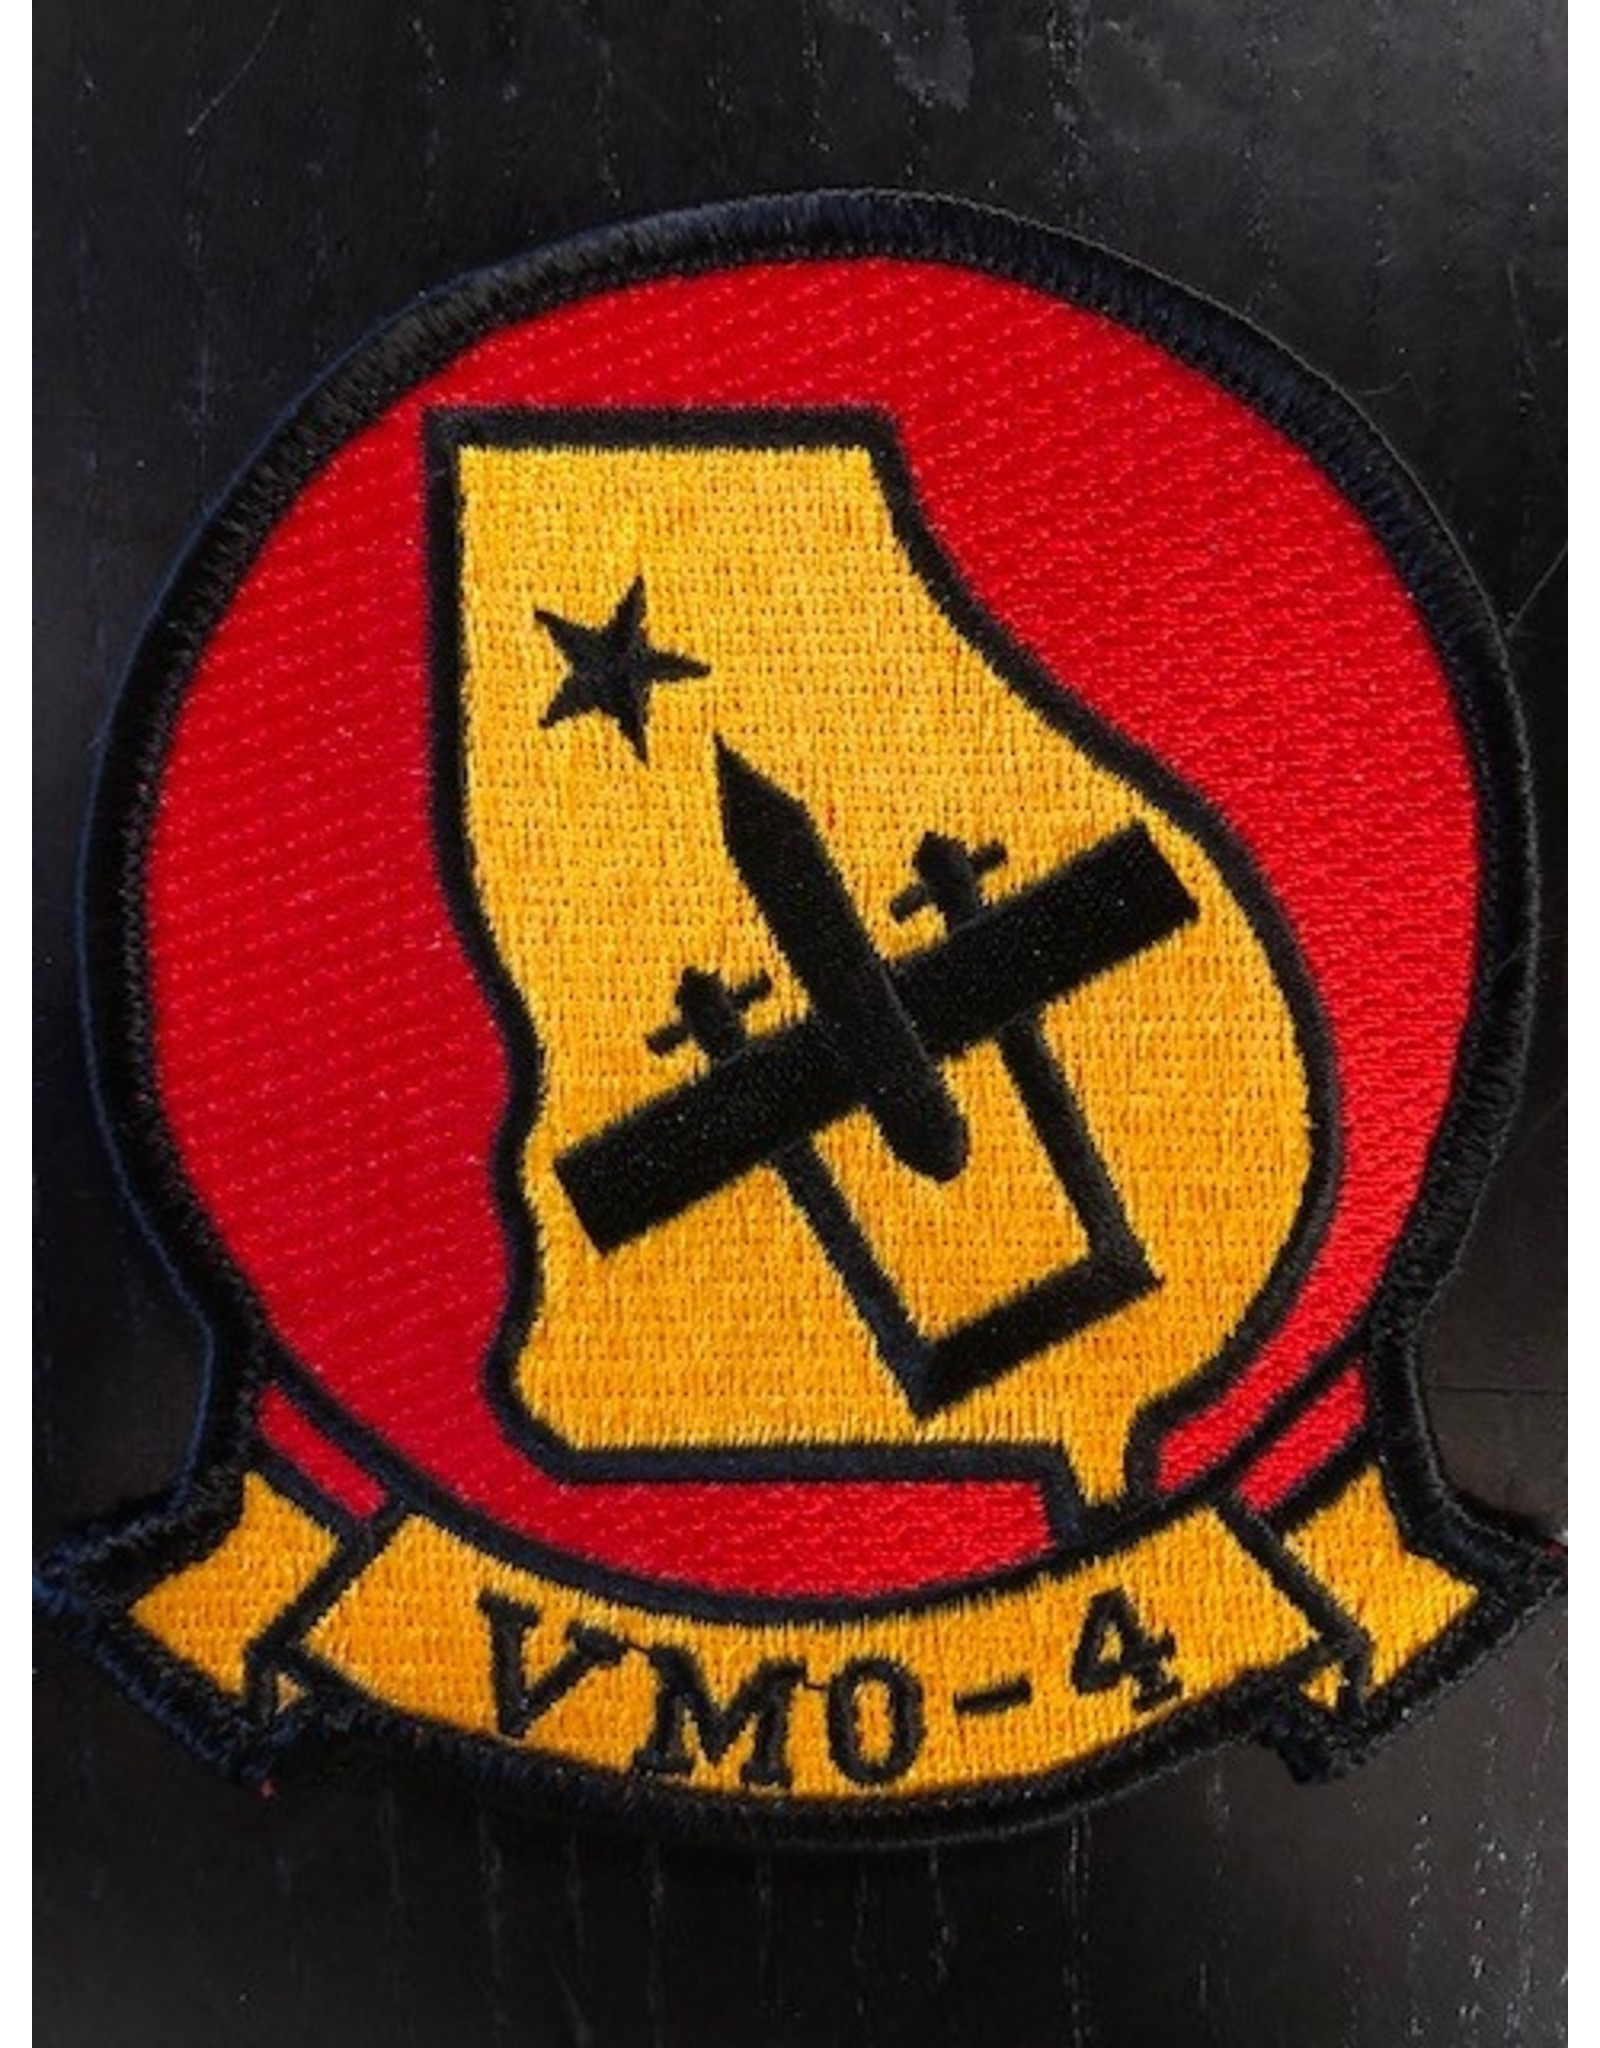 FWAM VMO-4 Georgia (19), patch